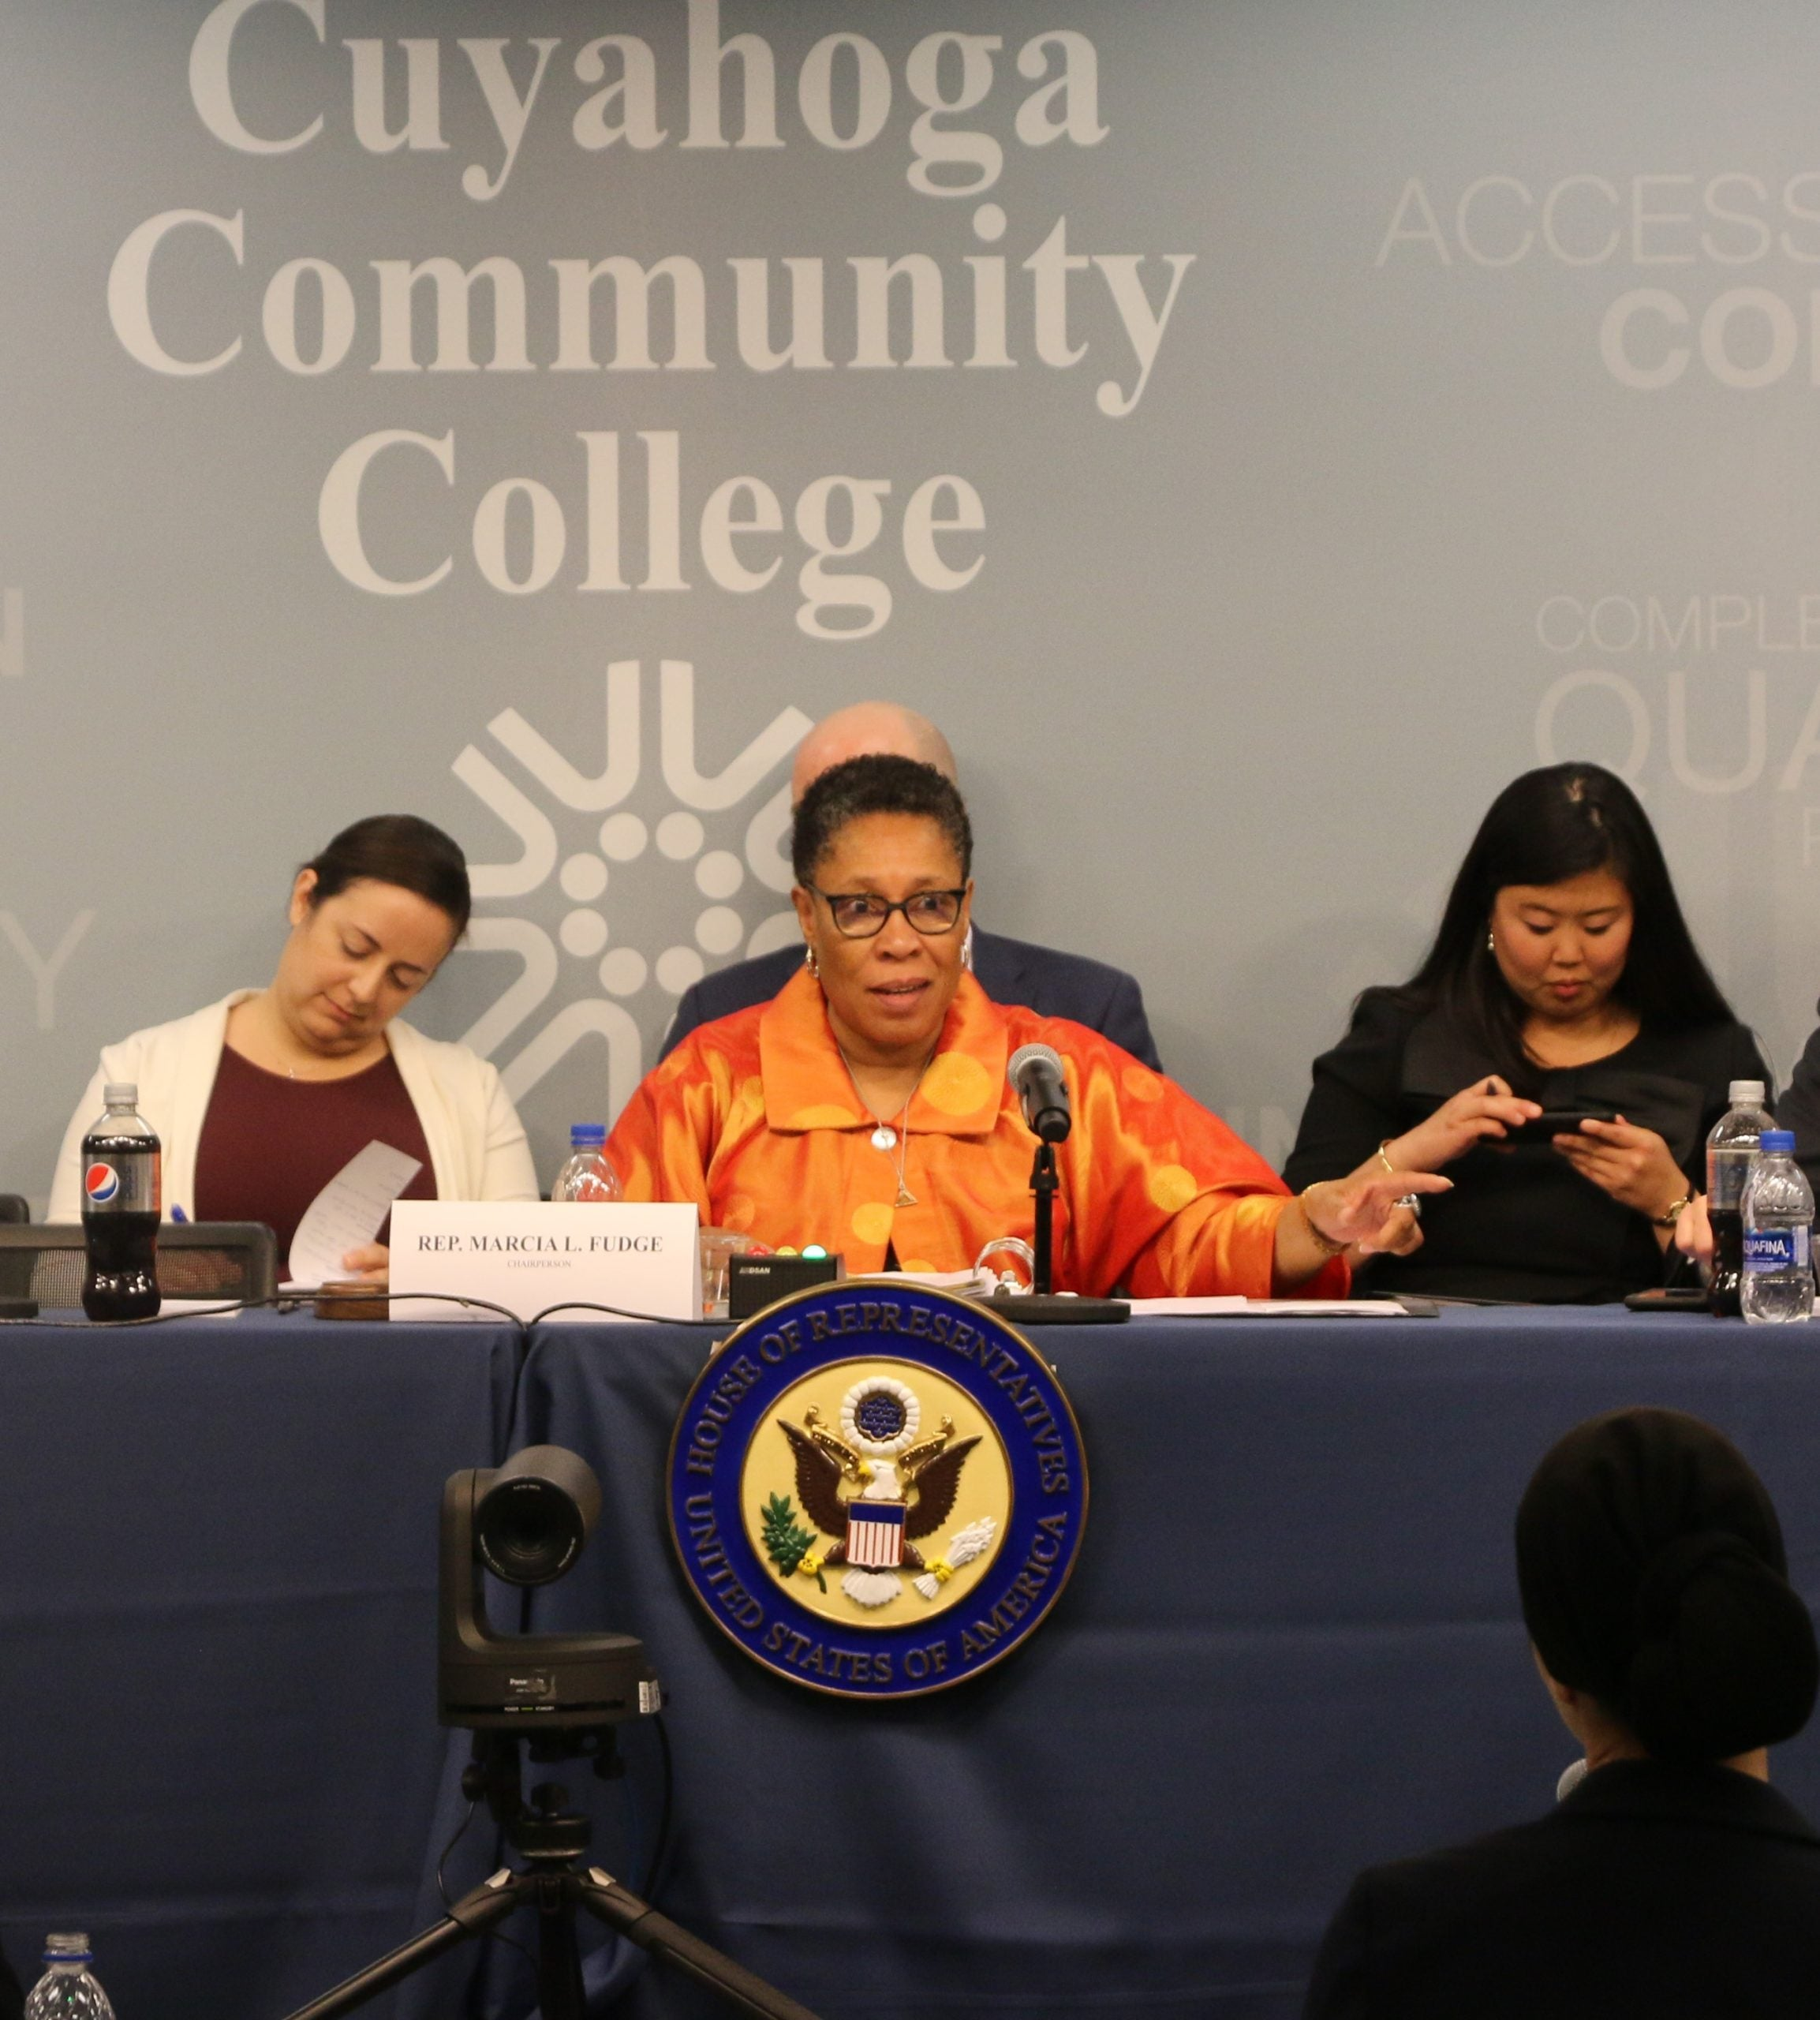 Rep. Marcia Fudge, CBC member and Chair of the House Administration Subcommittee on Elections